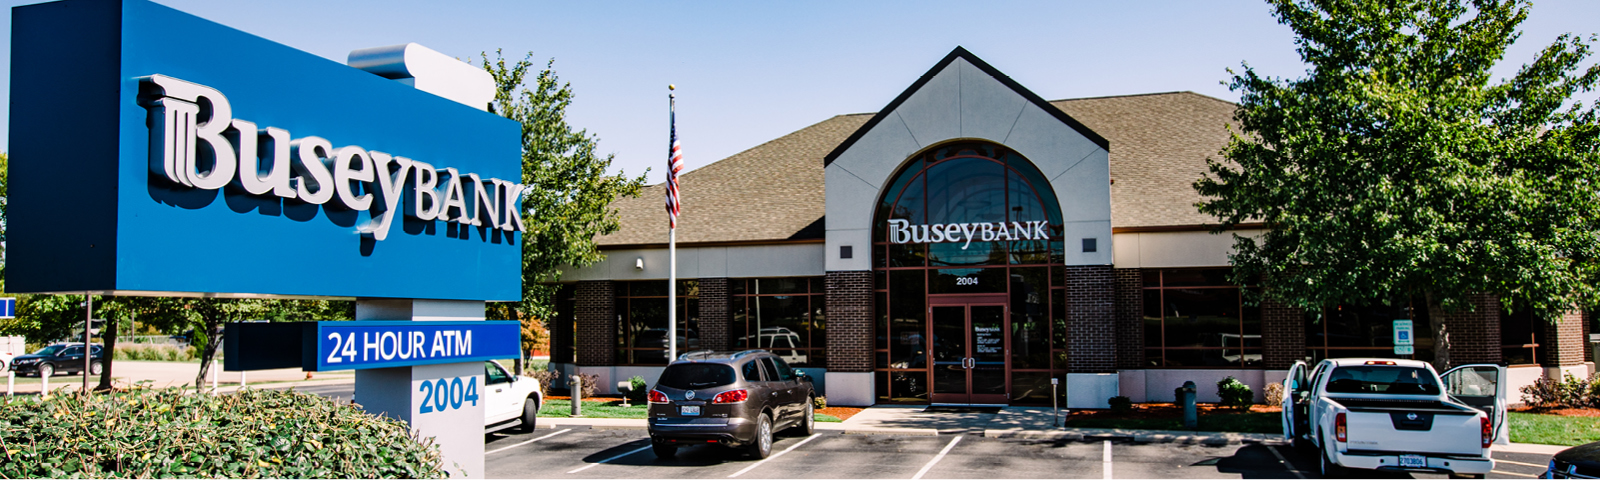 Busey Bank Edwardville Troy Road location